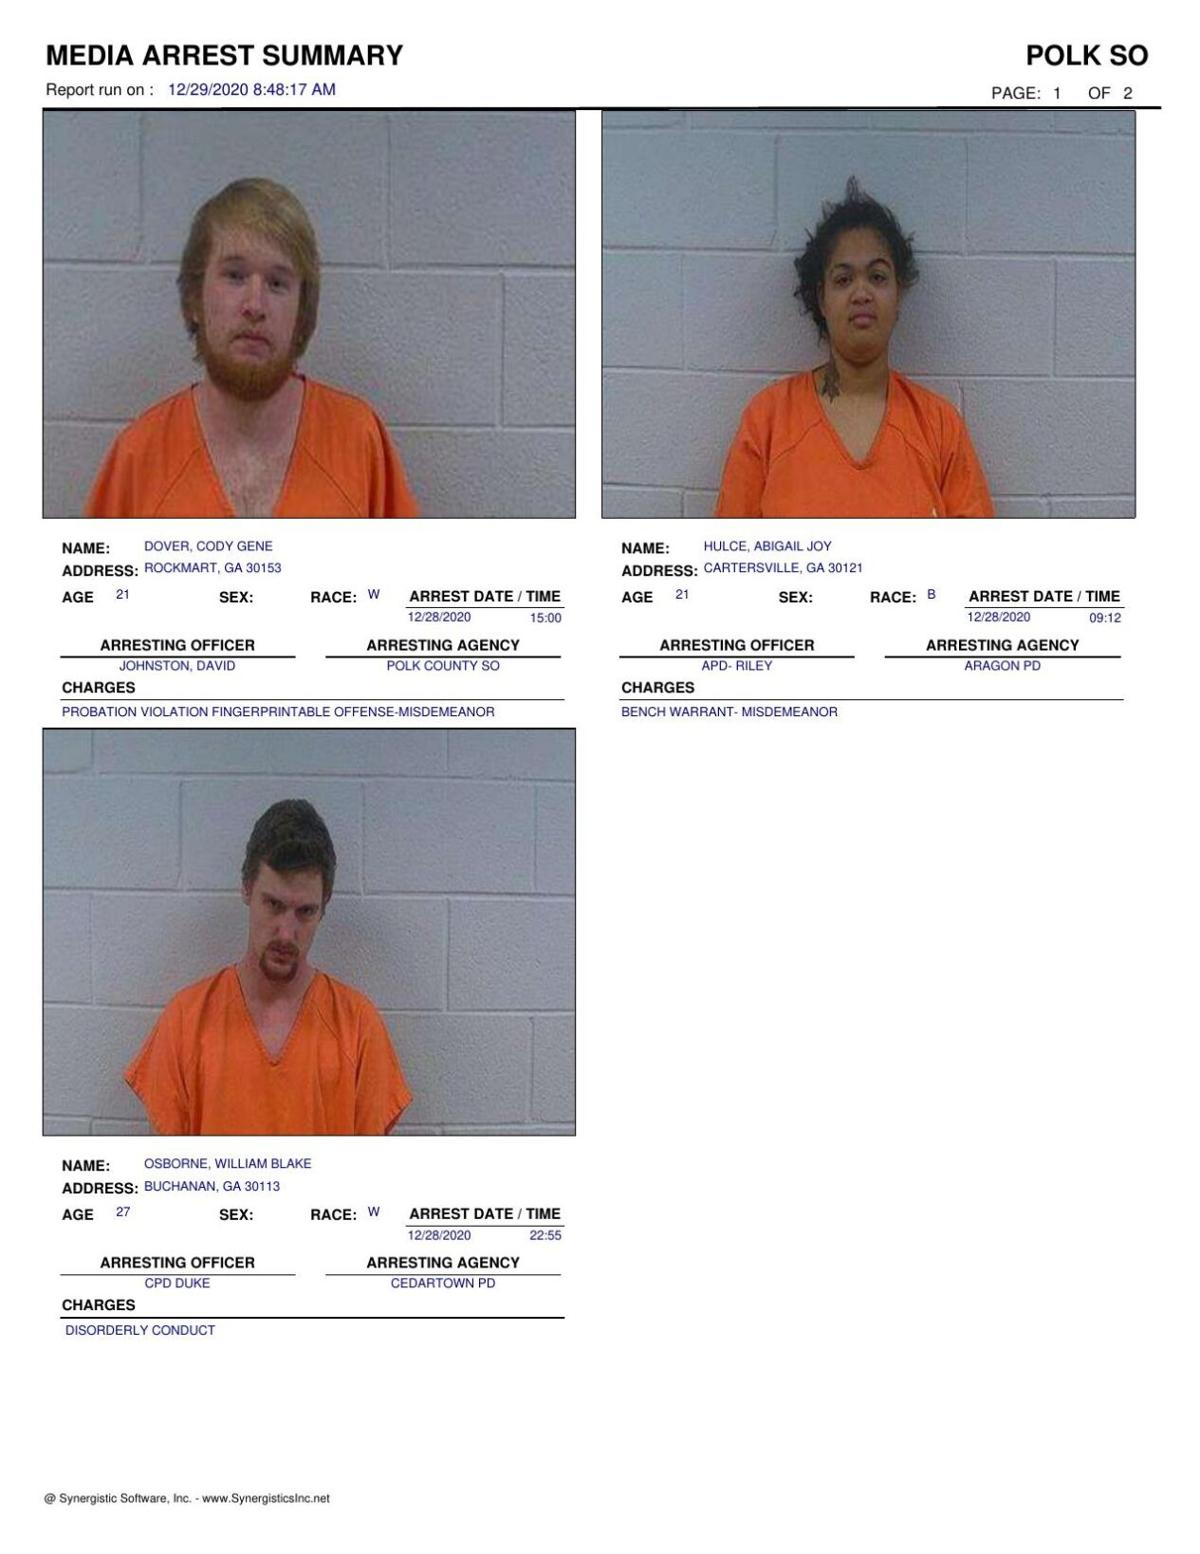 Polk County Jail Report for Tuesday, Dec. 29